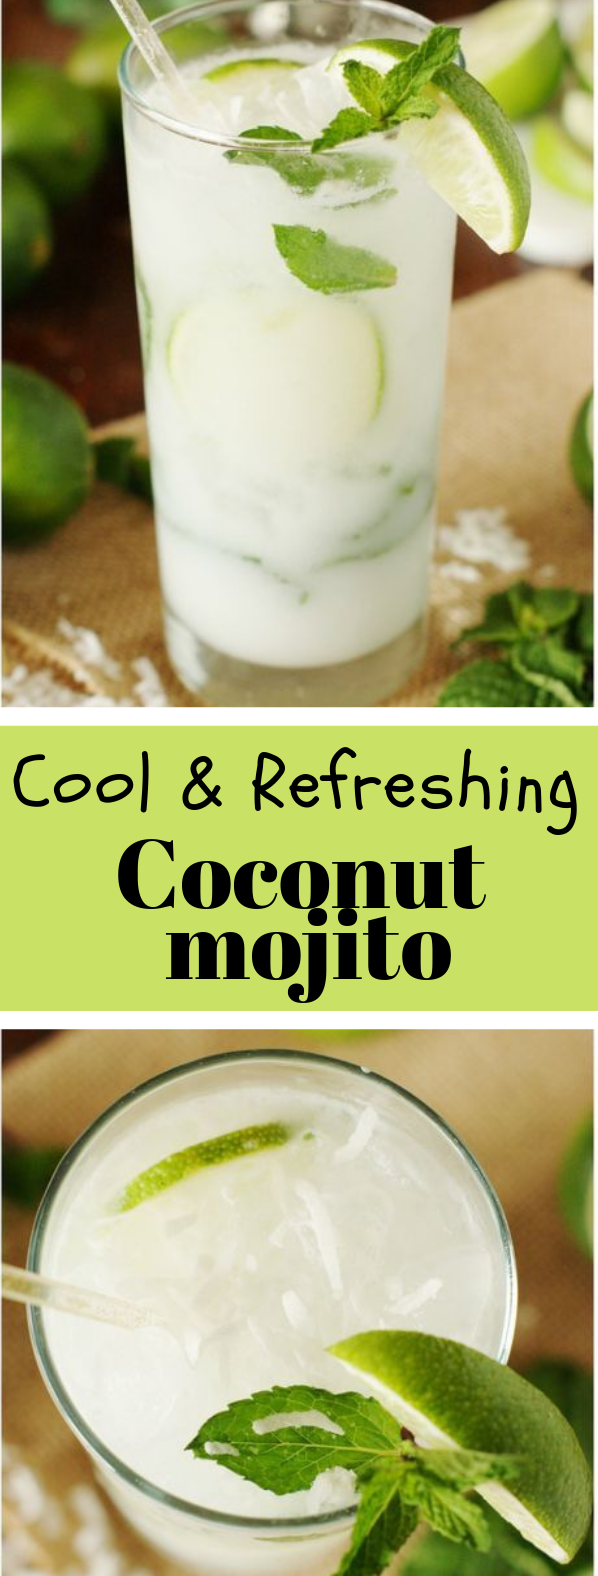 COCONUT MOJITO #drinks #healthydrinks